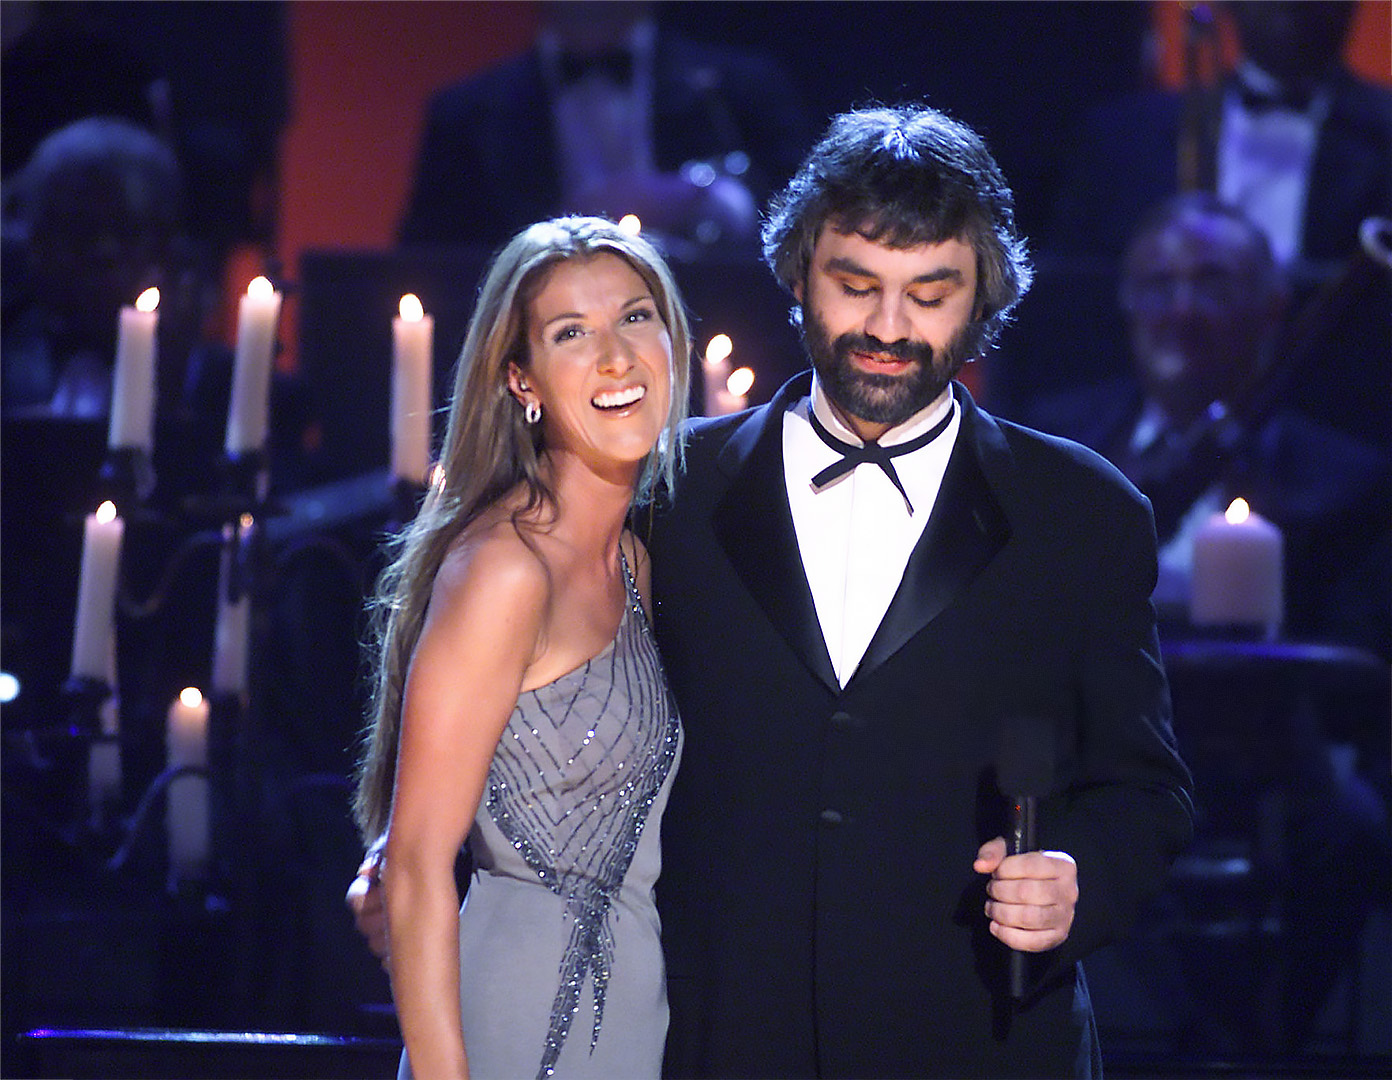 Céline Dion, Andrea Bocelli (© Photo by Frank Micelotta/ImageDirect/Getty Imabes)